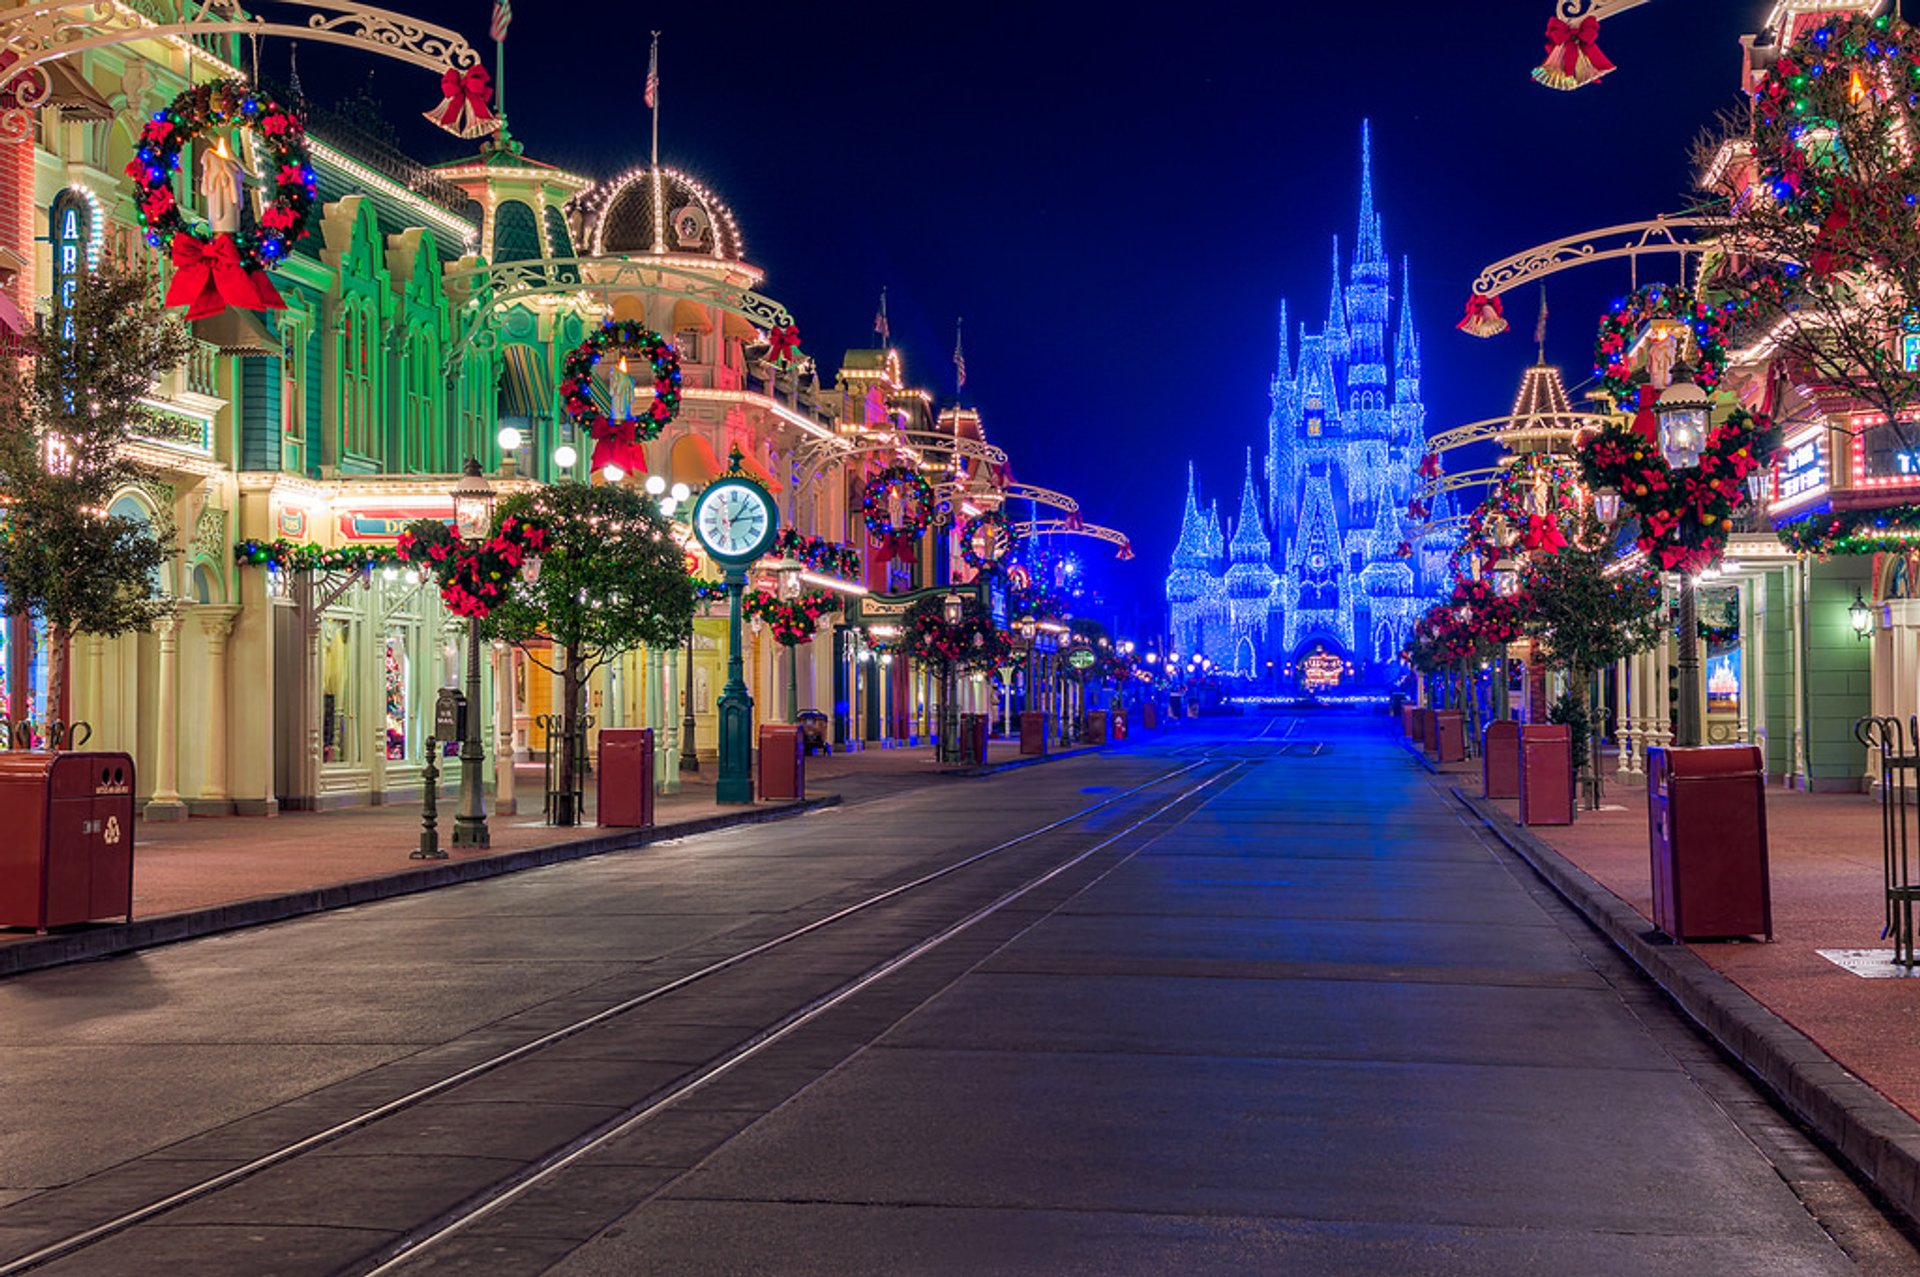 Christmas 2020.Christmas At Disney World 2019 2020 In Florida Dates Map